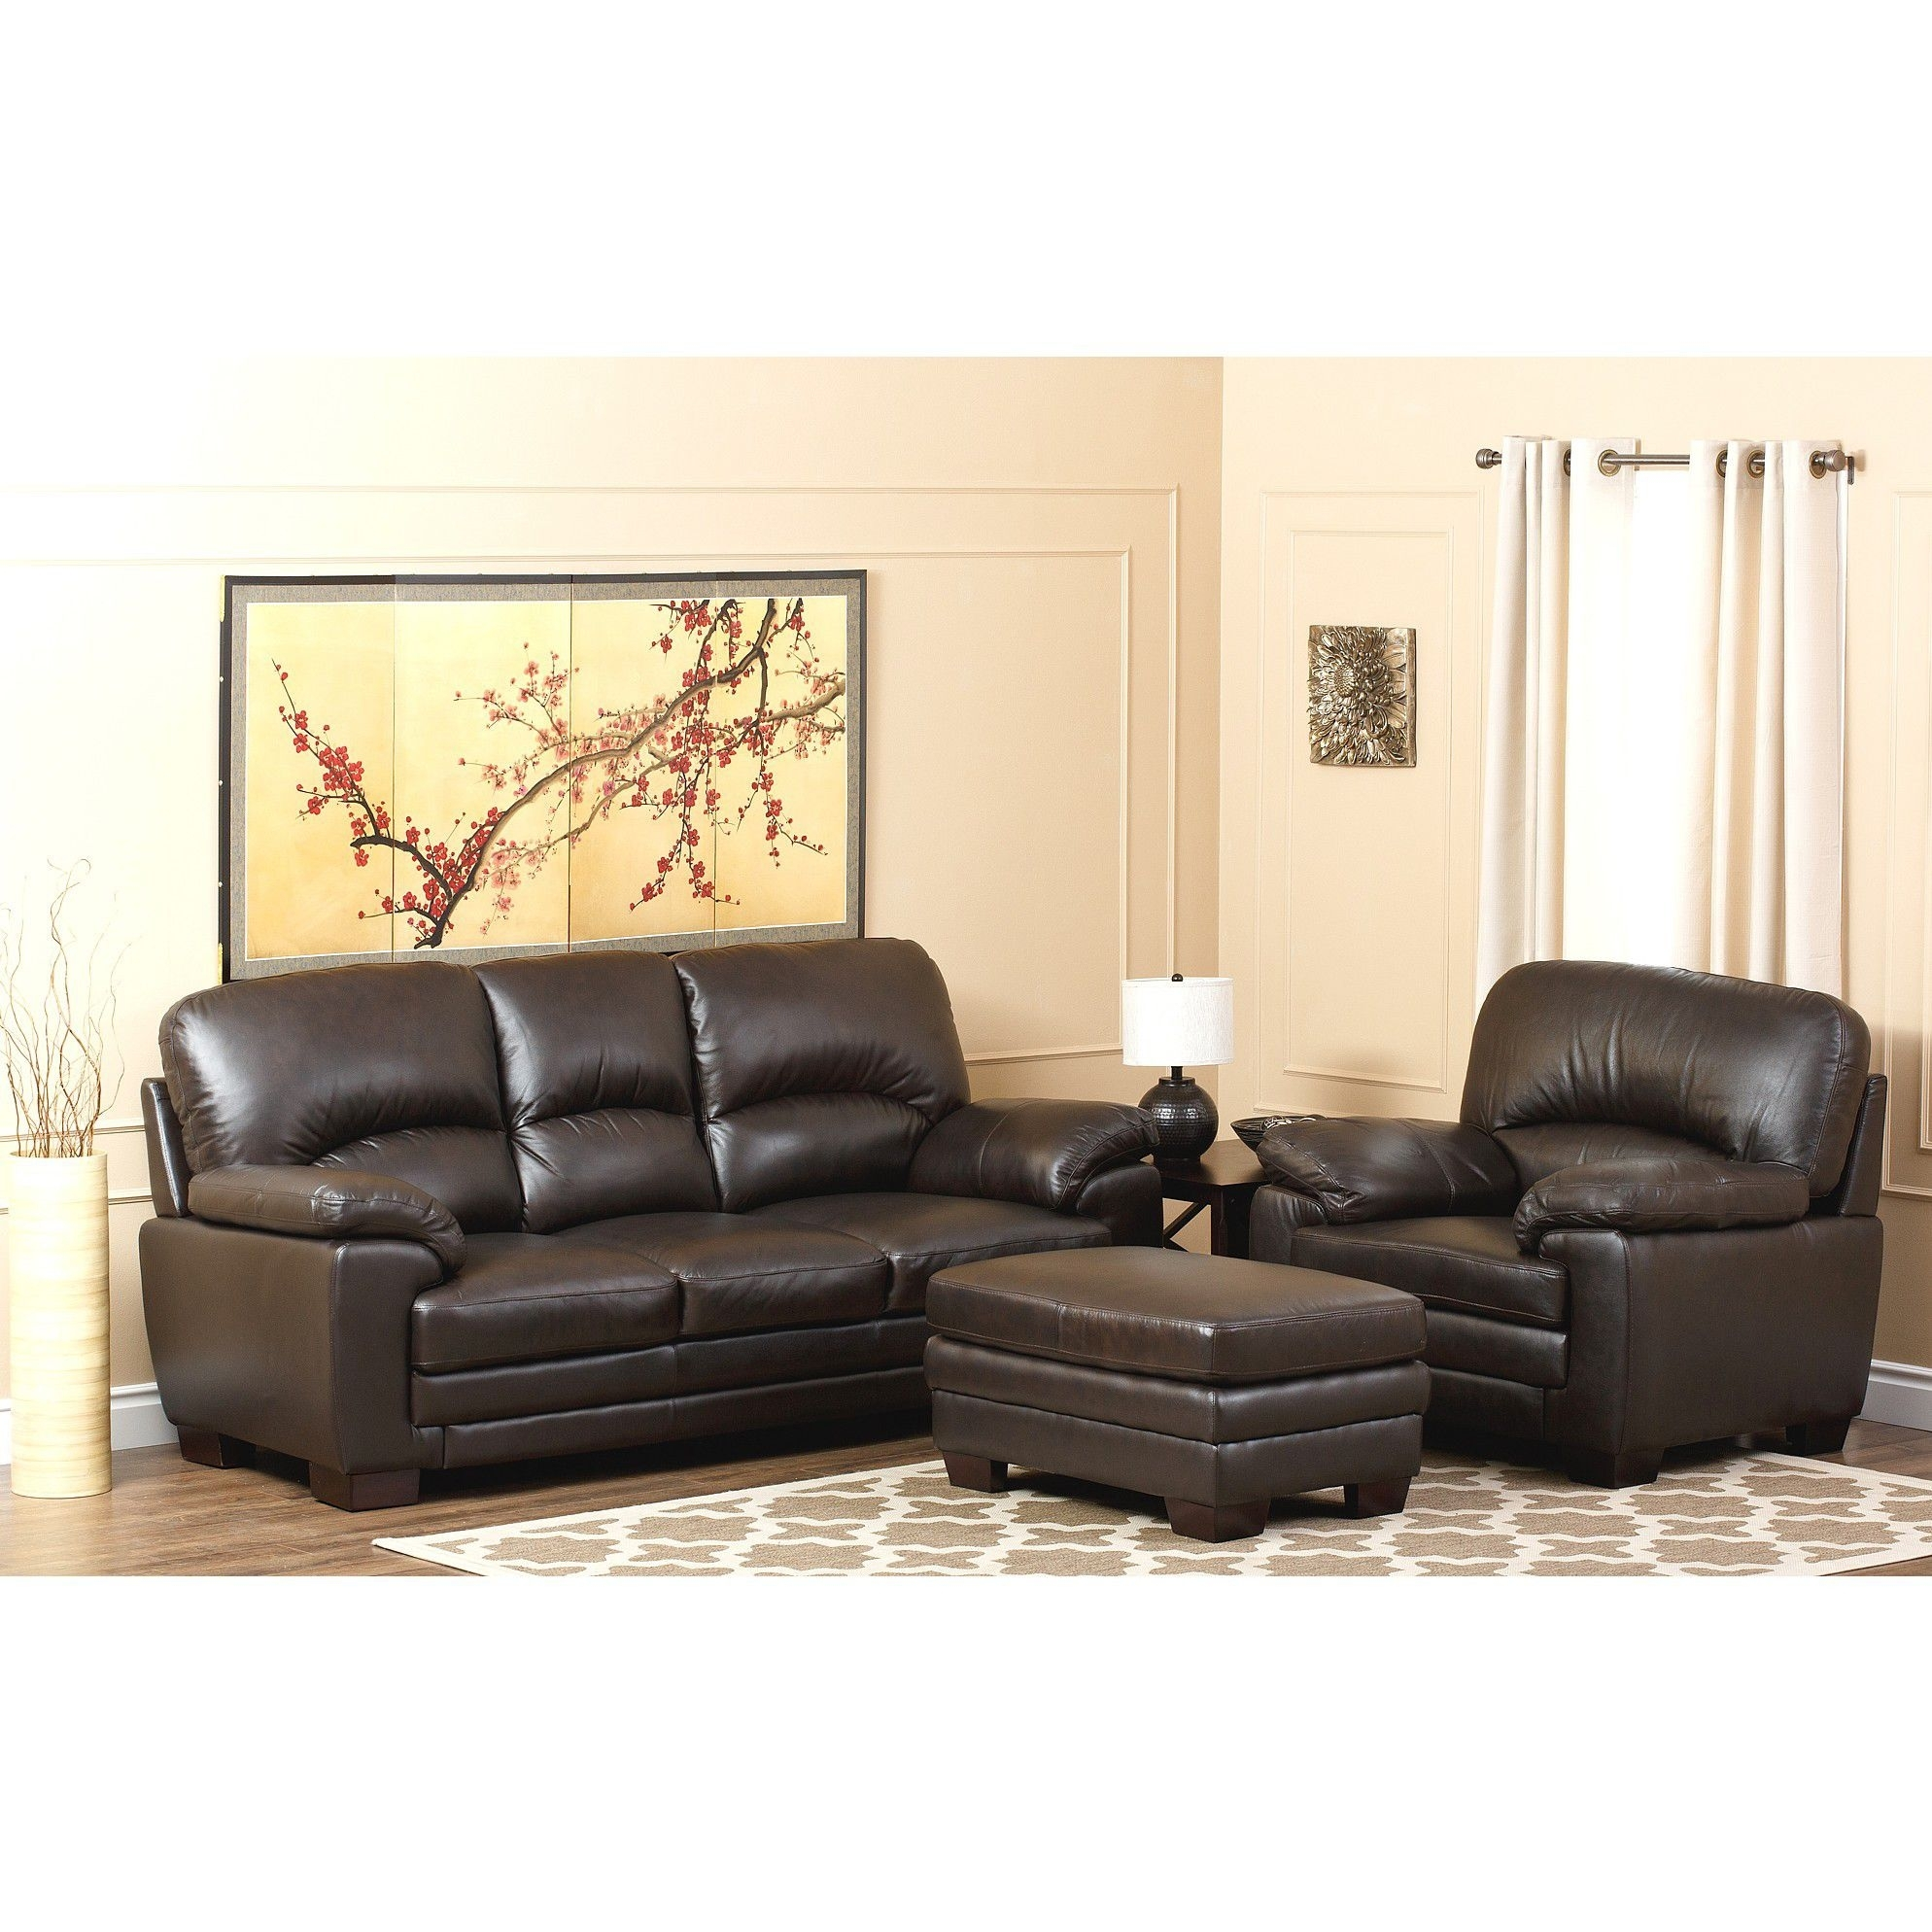 Awesome Best Sofas In Orange County Calendrierdujeu Pic For Cheap Throughout Orange County Sofas (View 4 of 10)